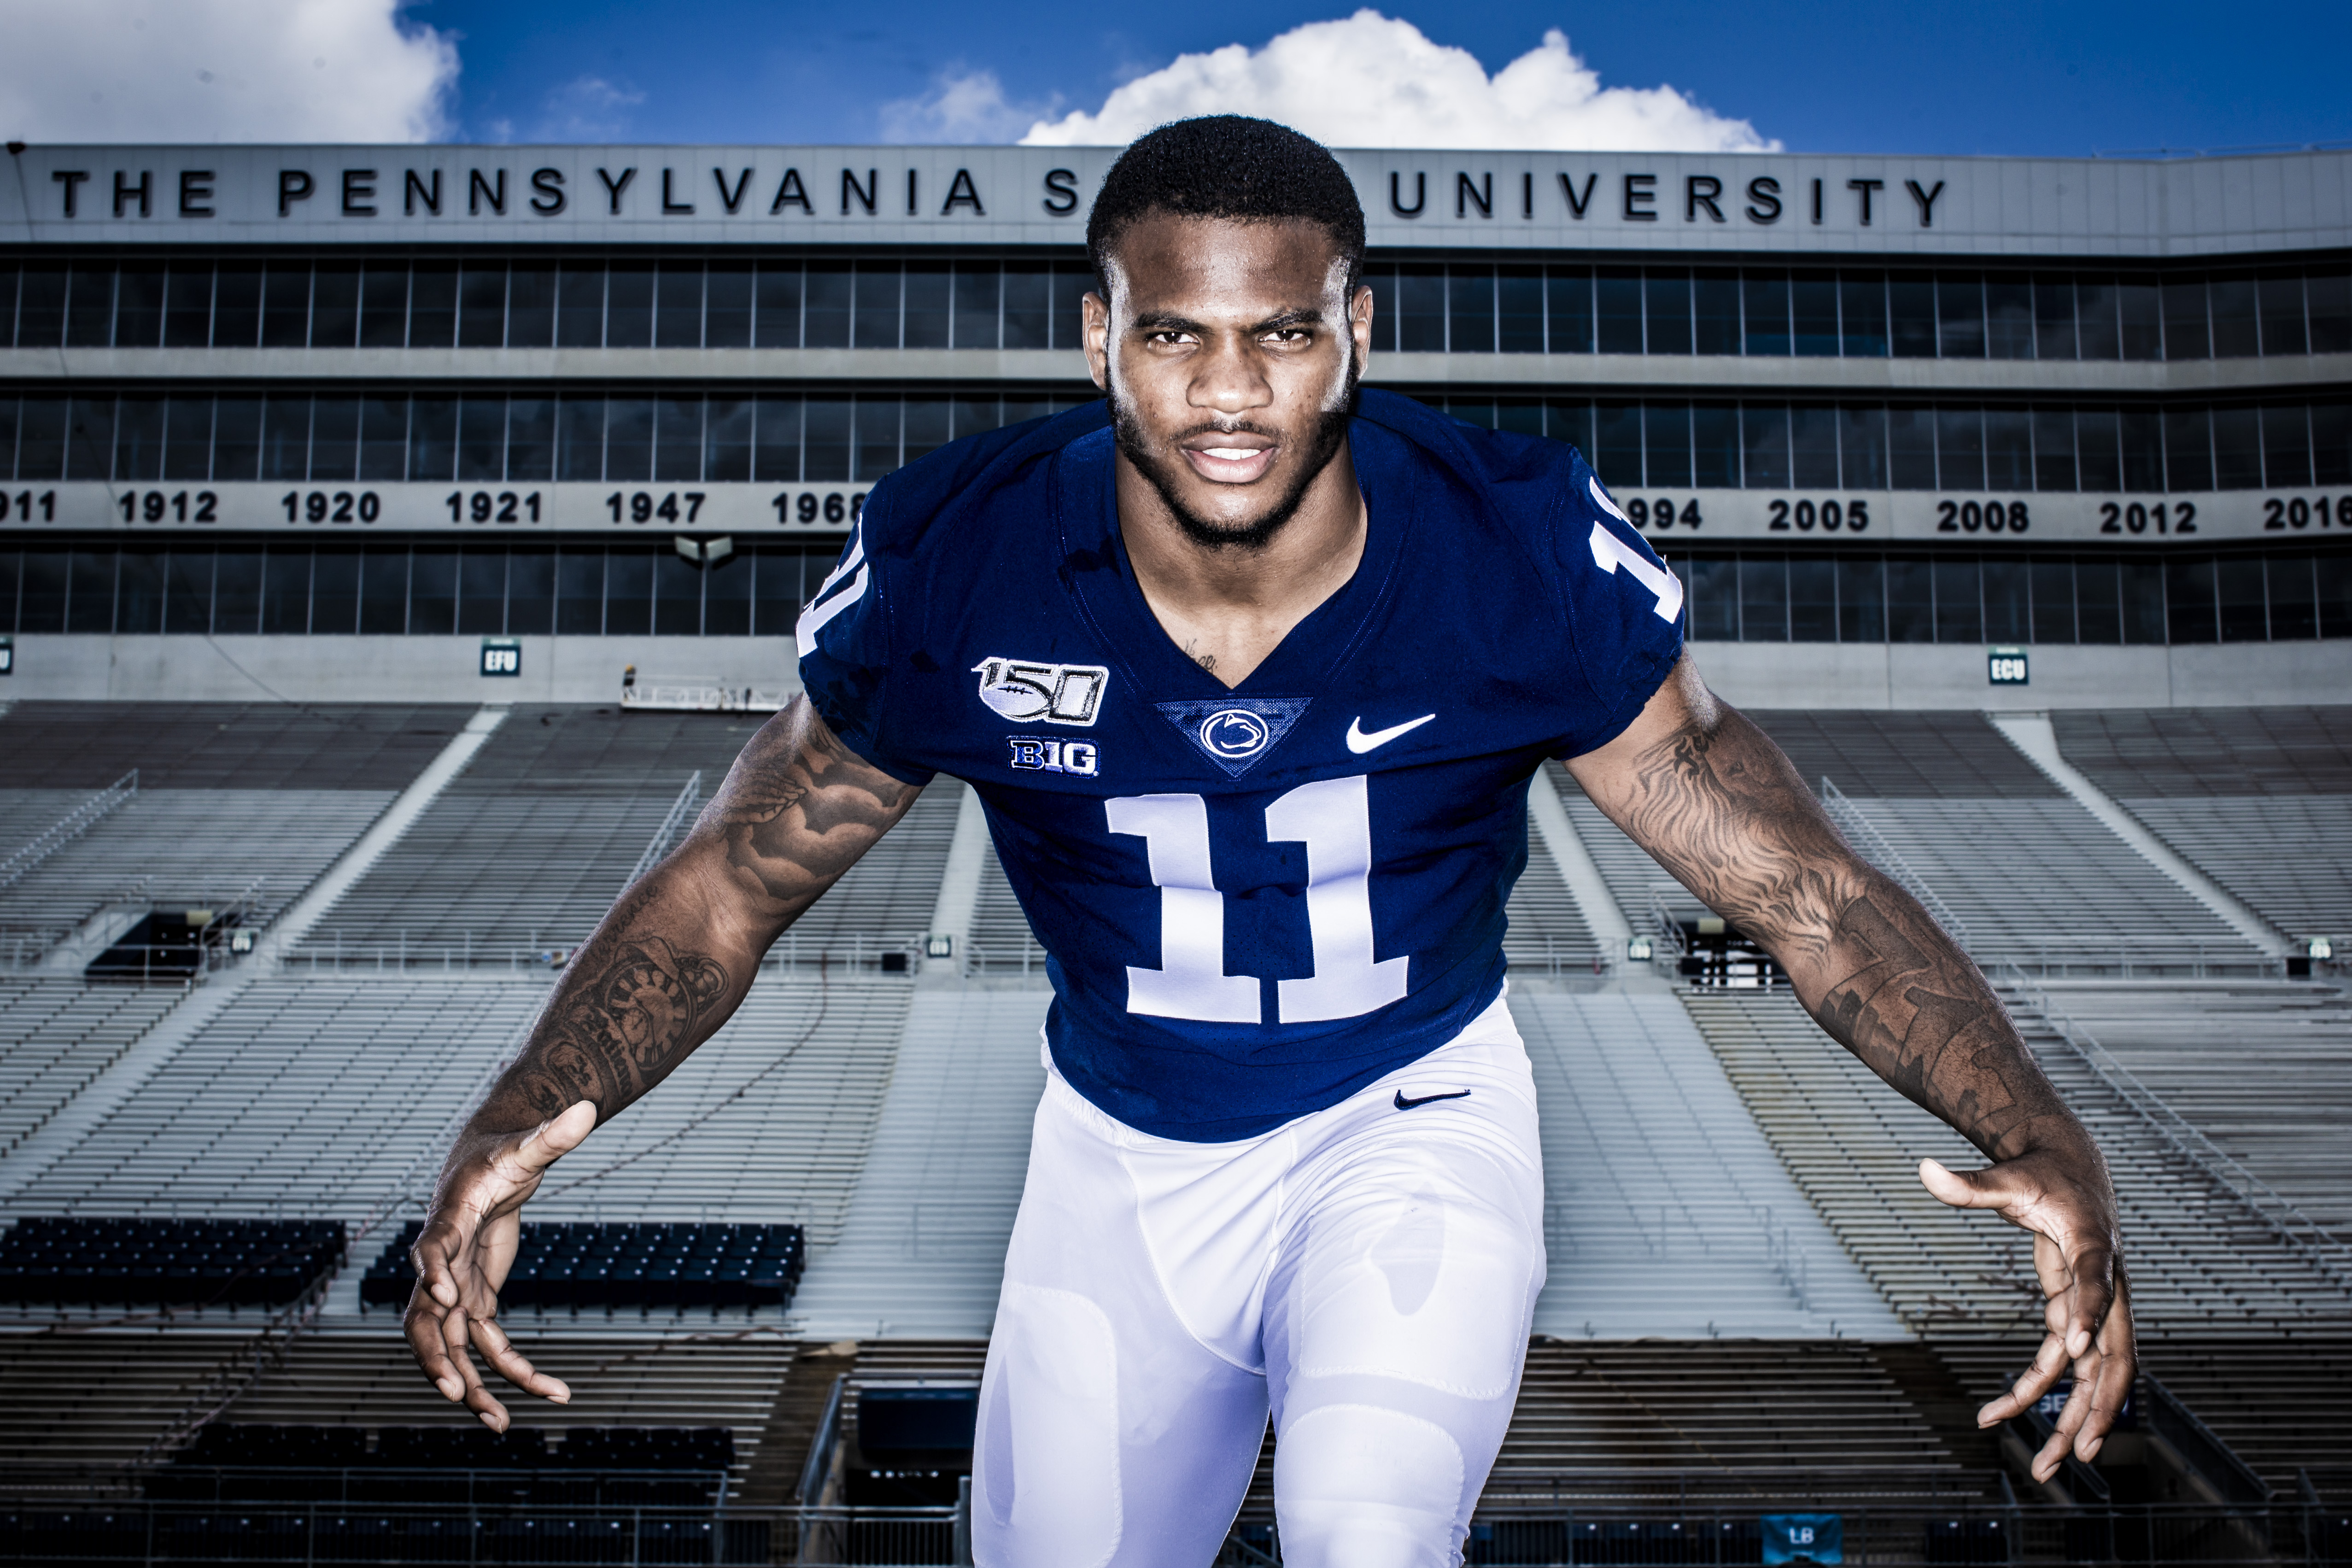 See some of the stars of Penn State's defense like never before in these special pictures and facts